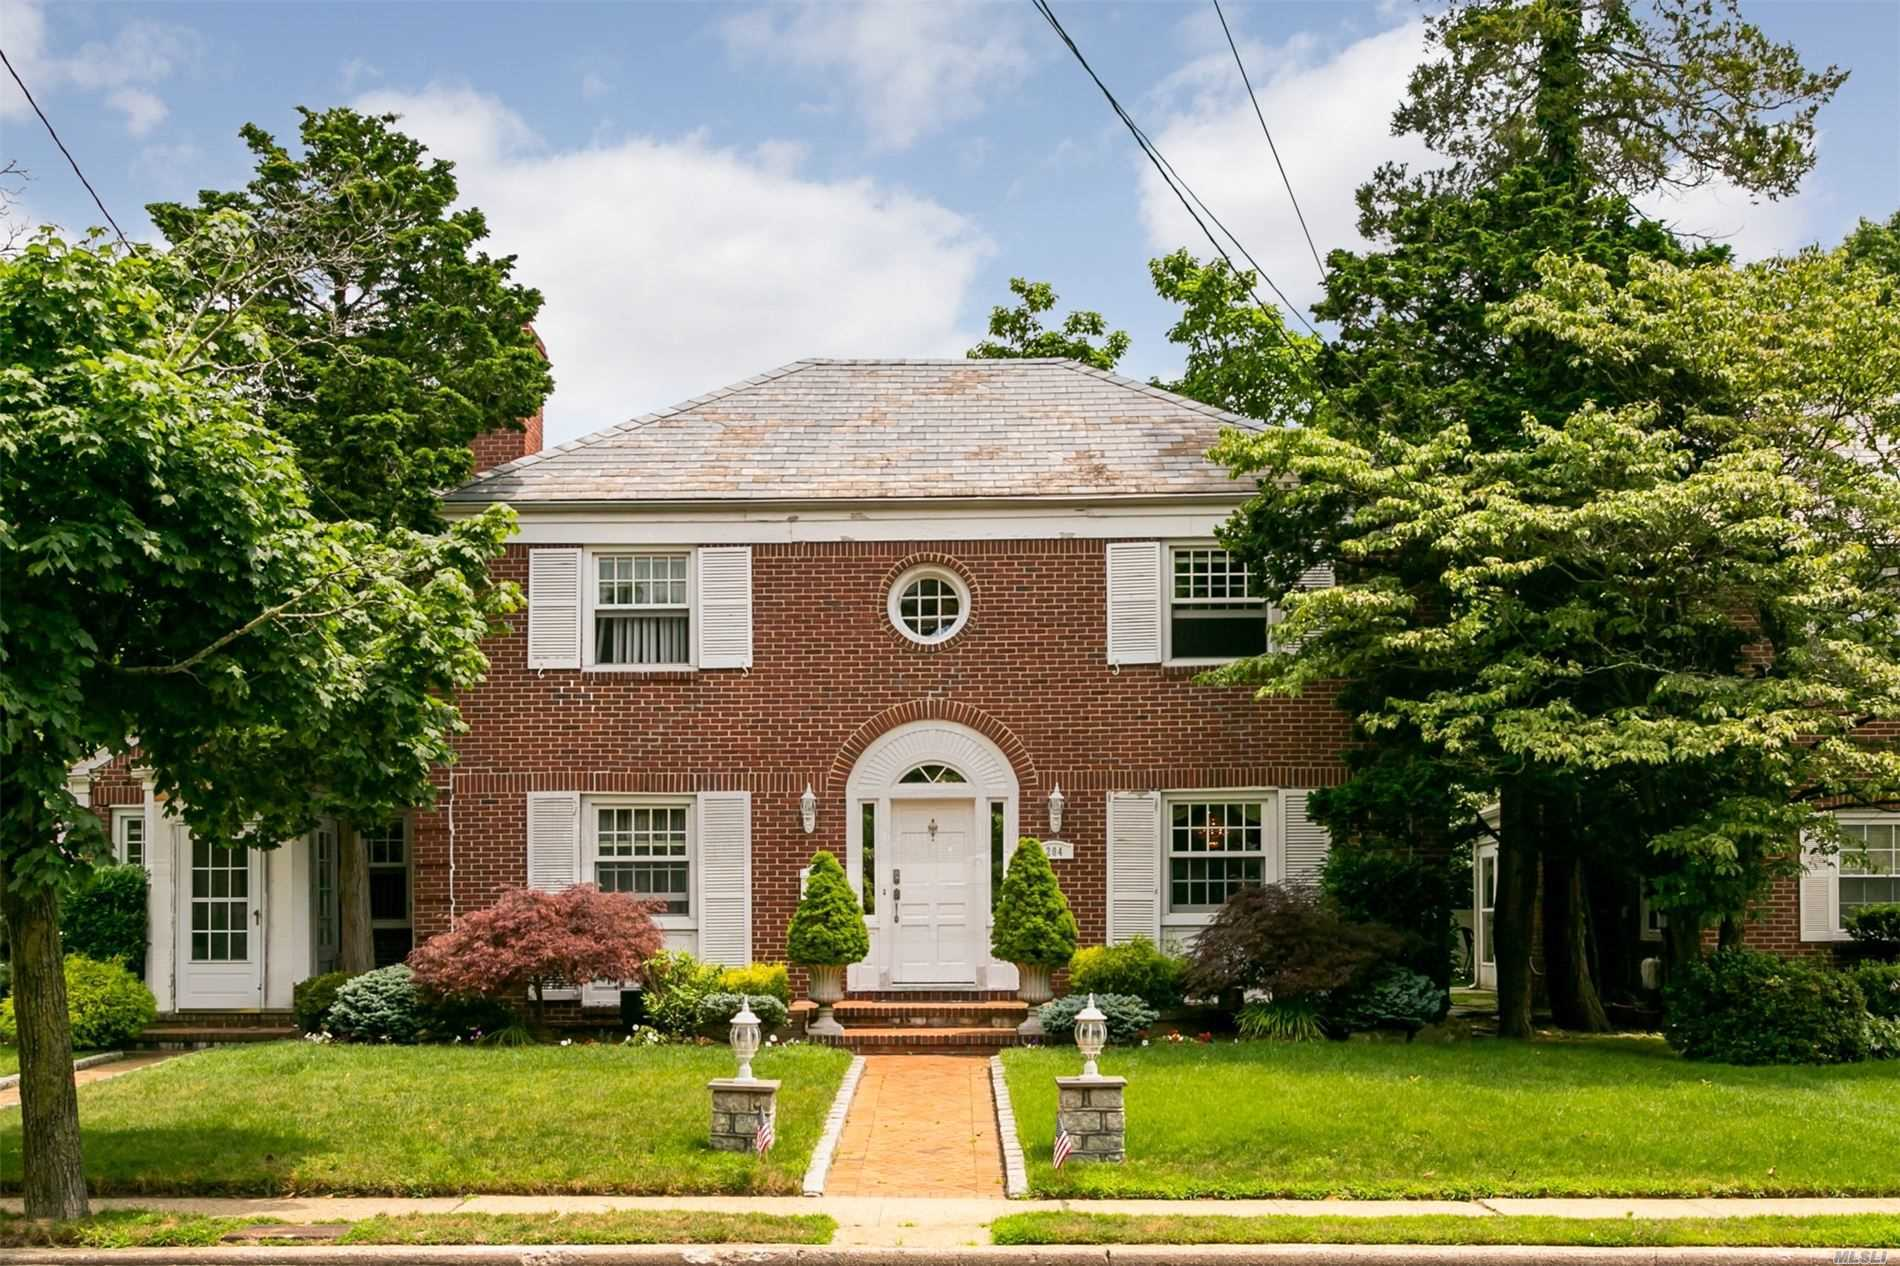 This unique & majestic all-brick colonial has high end, custom upgrades thru out. Stunning EIK w/maple cabinets, stainless applcs including wine fridge, granite counters. Sunken living rm w/Wood burning fireplace & built-ins. Mstr bdrm Ste w/2 walk in closets, bath w/double vanity & granite counters. Beautiful HW floors thru out. Two addit'l rooms ideal for home office or Au Pair suite. Upgraded 3 zone gas heat, 200 amp electric. Close to LIRR & Shopping. Too much to list..come see for yourself!